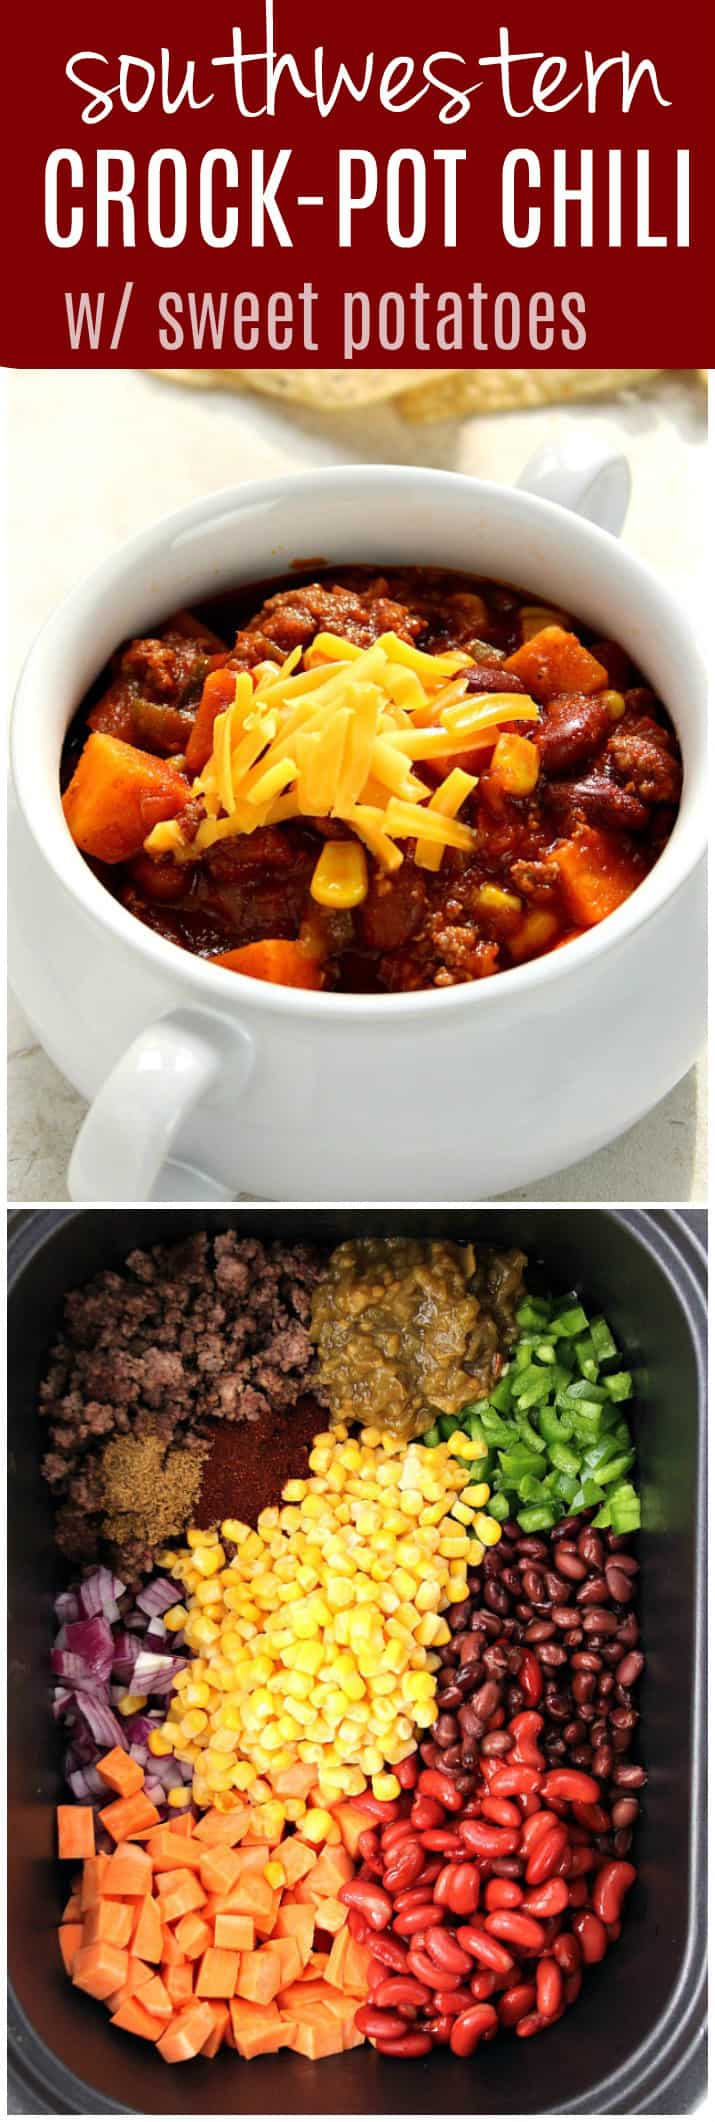 southwestern crock pot chili with sweet potatoes recipe long1 Southwestern Crock Pot® Chili with Sweet Potatoes Recipe